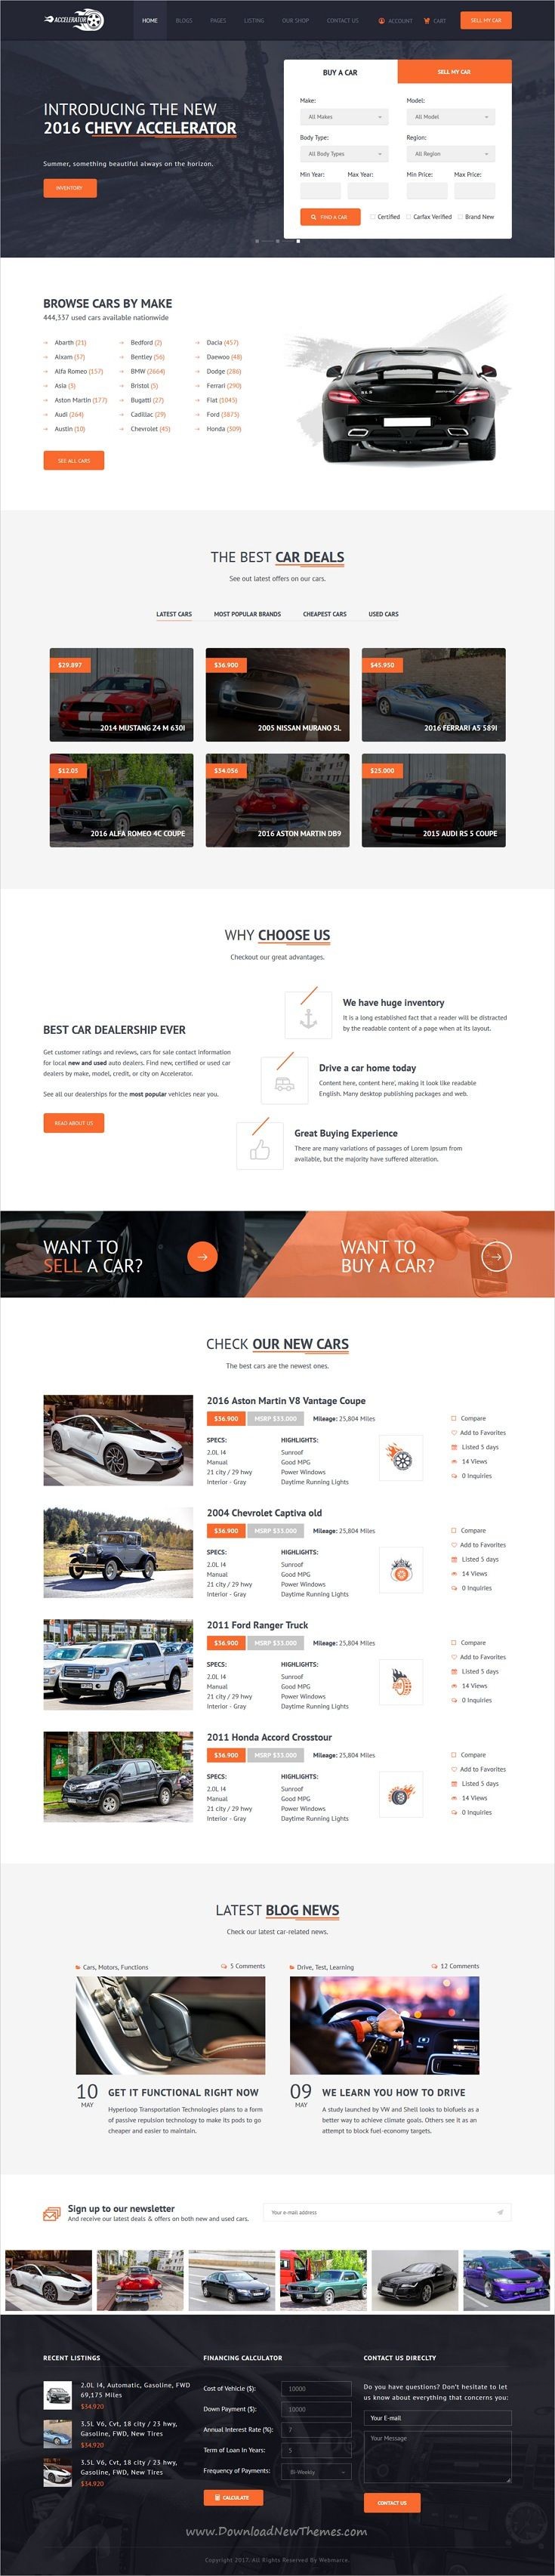 Accelerator is clean and modern design responsive #HTML Bootstrap template for car #listings and automobile #dealers website with advance search form download now #webdesign